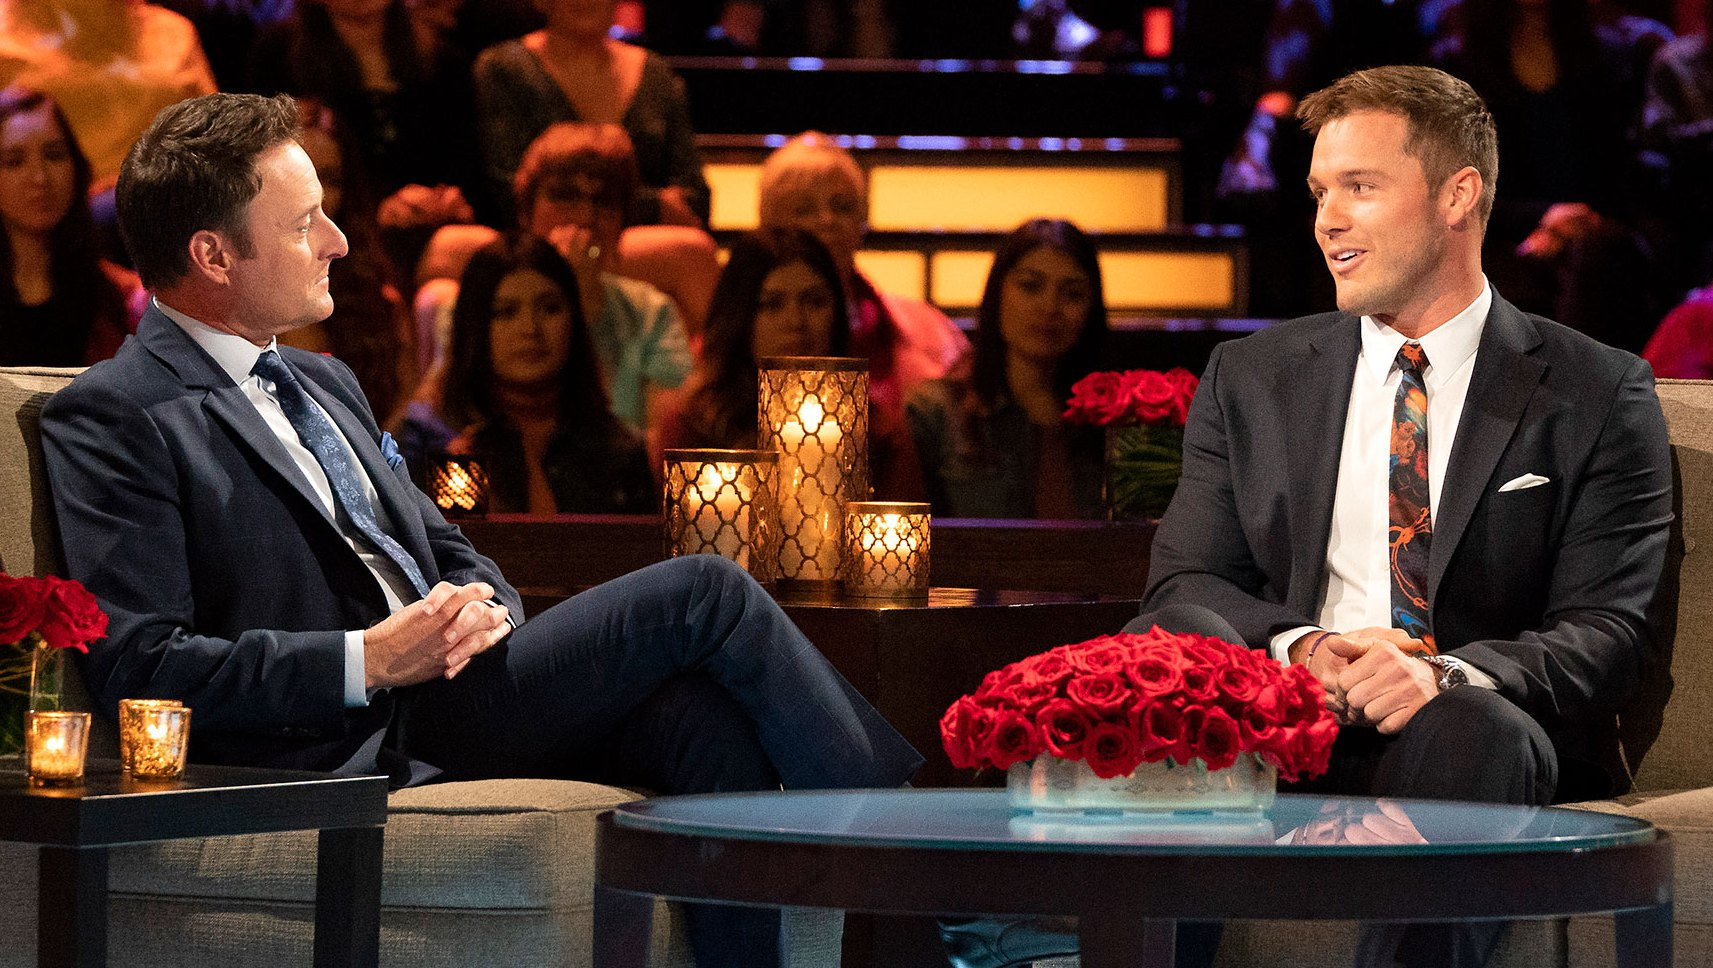 'The Bachelor' Recap: Chris Harrison Point-Blank Asks Colton Whether Cassie Is 'Just Not That Into' Him